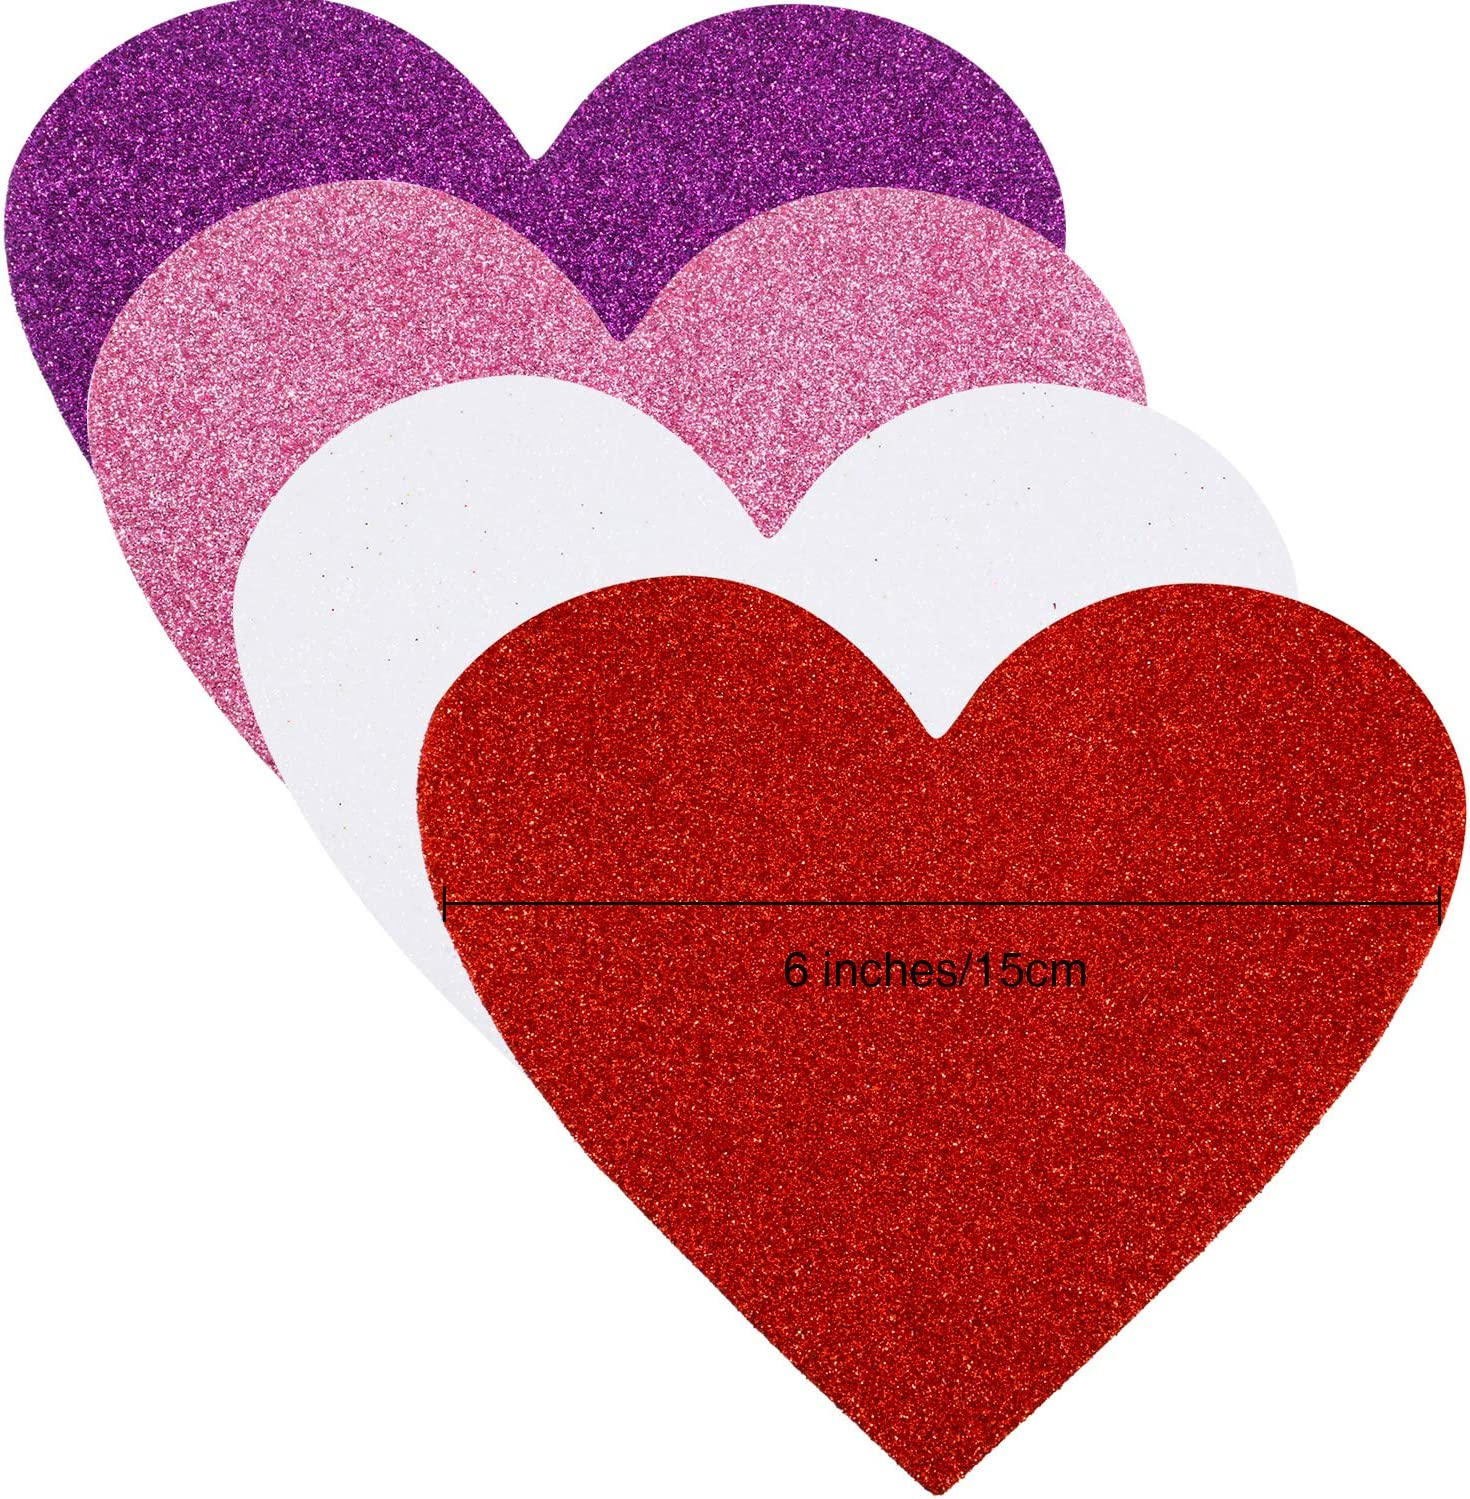 Glitter Pink, Glitter Red, Glitter White, Glitter Purple 24 Piece 6 Inches Heart Foam Stickers Large Heart Shaped Stickers Self Adhesive Heart Stickers for Valentine Mothers Day DIY Craft 4 Colors